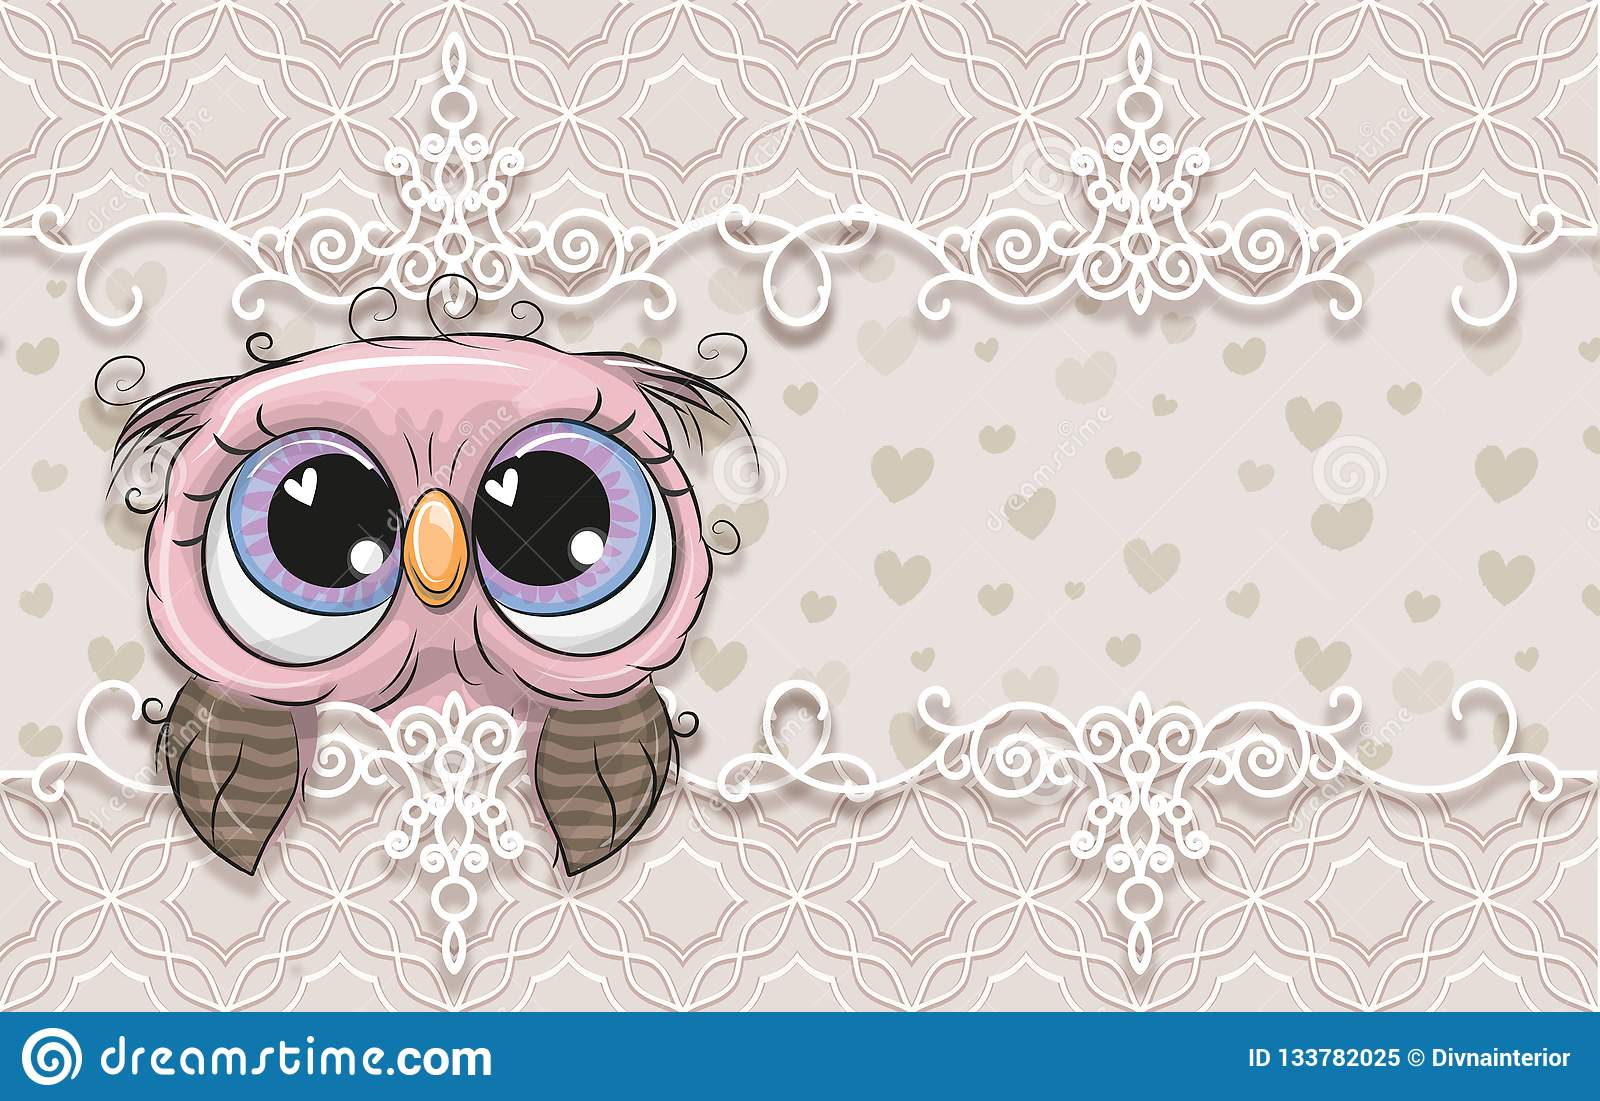 3d Wallpaper Cute Pastel Background With Owlet Birthday